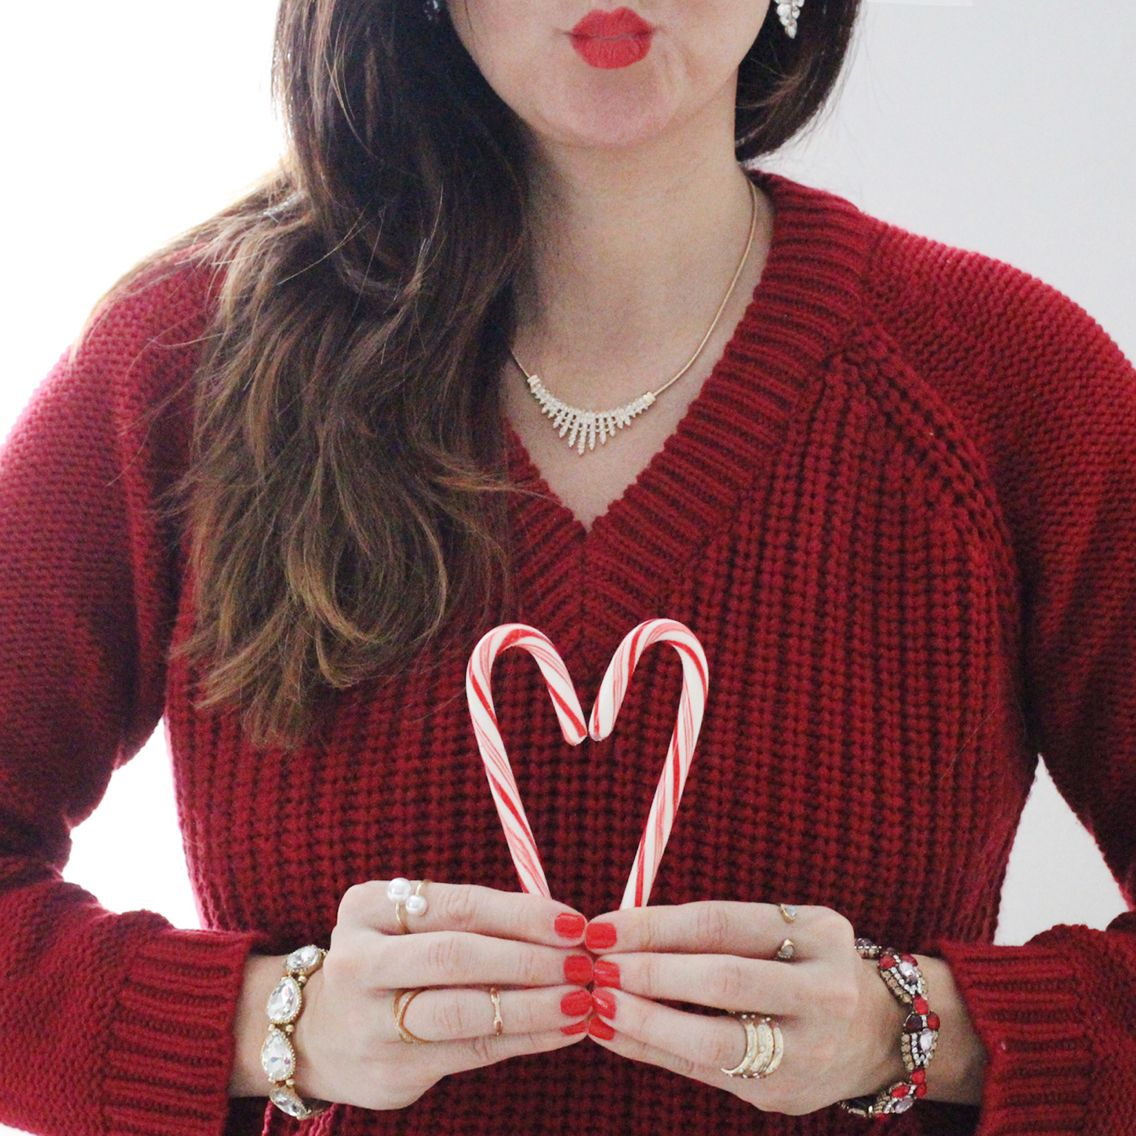 A little kiss and lots of love on this #ChristmasEve from us to you. ❤️  http://bit.ly/1r1mP6m